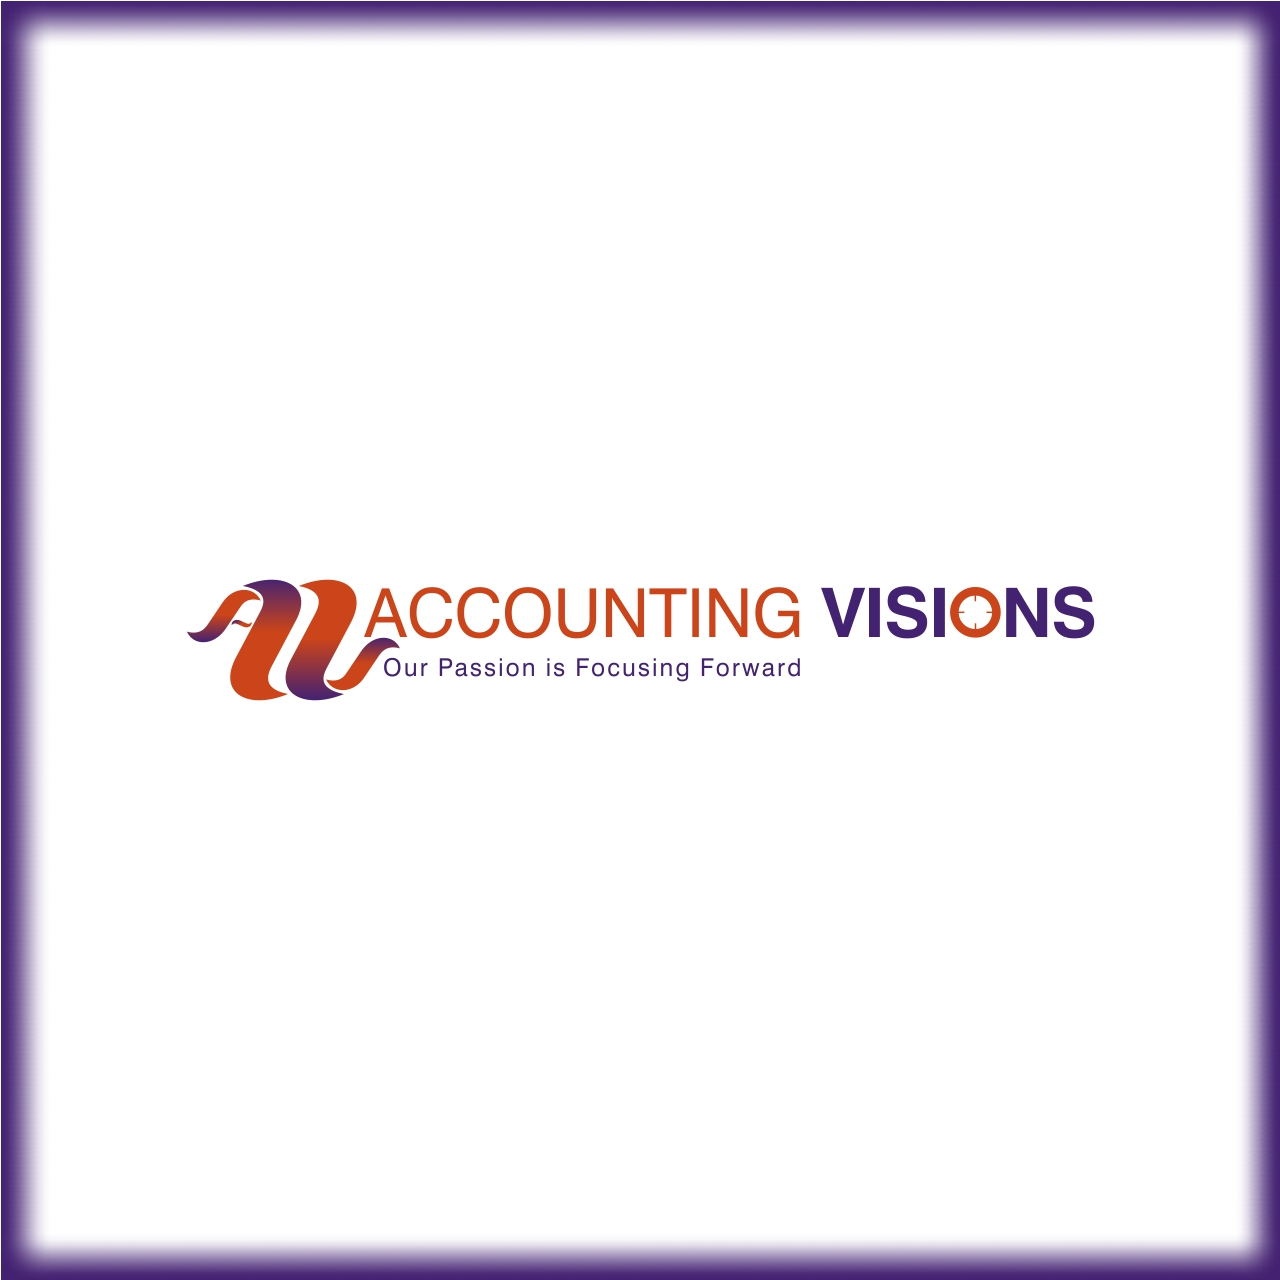 Logo Design by martinz - Entry No. 115 in the Logo Design Contest Accounting Visions.